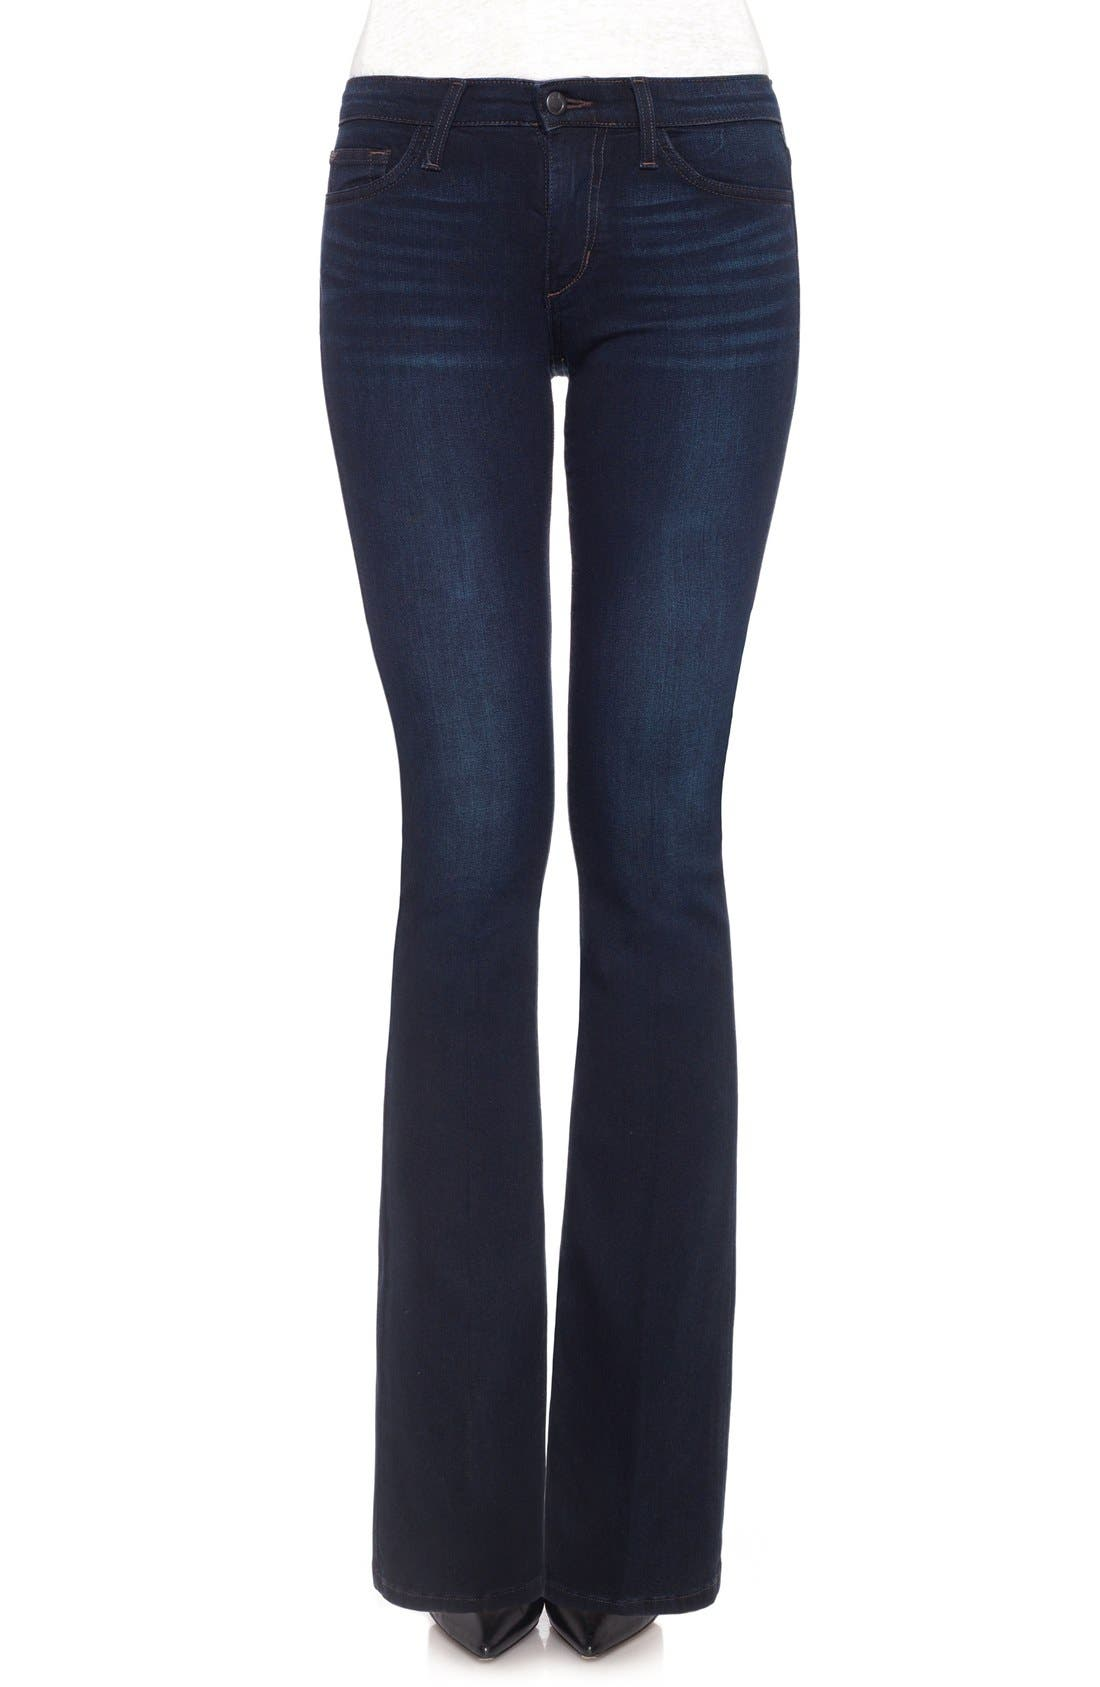 Alternate Image 1 Selected - Joe's 'Flawless - Provocateur' Bootcut Jeans (Selma) (Petite)